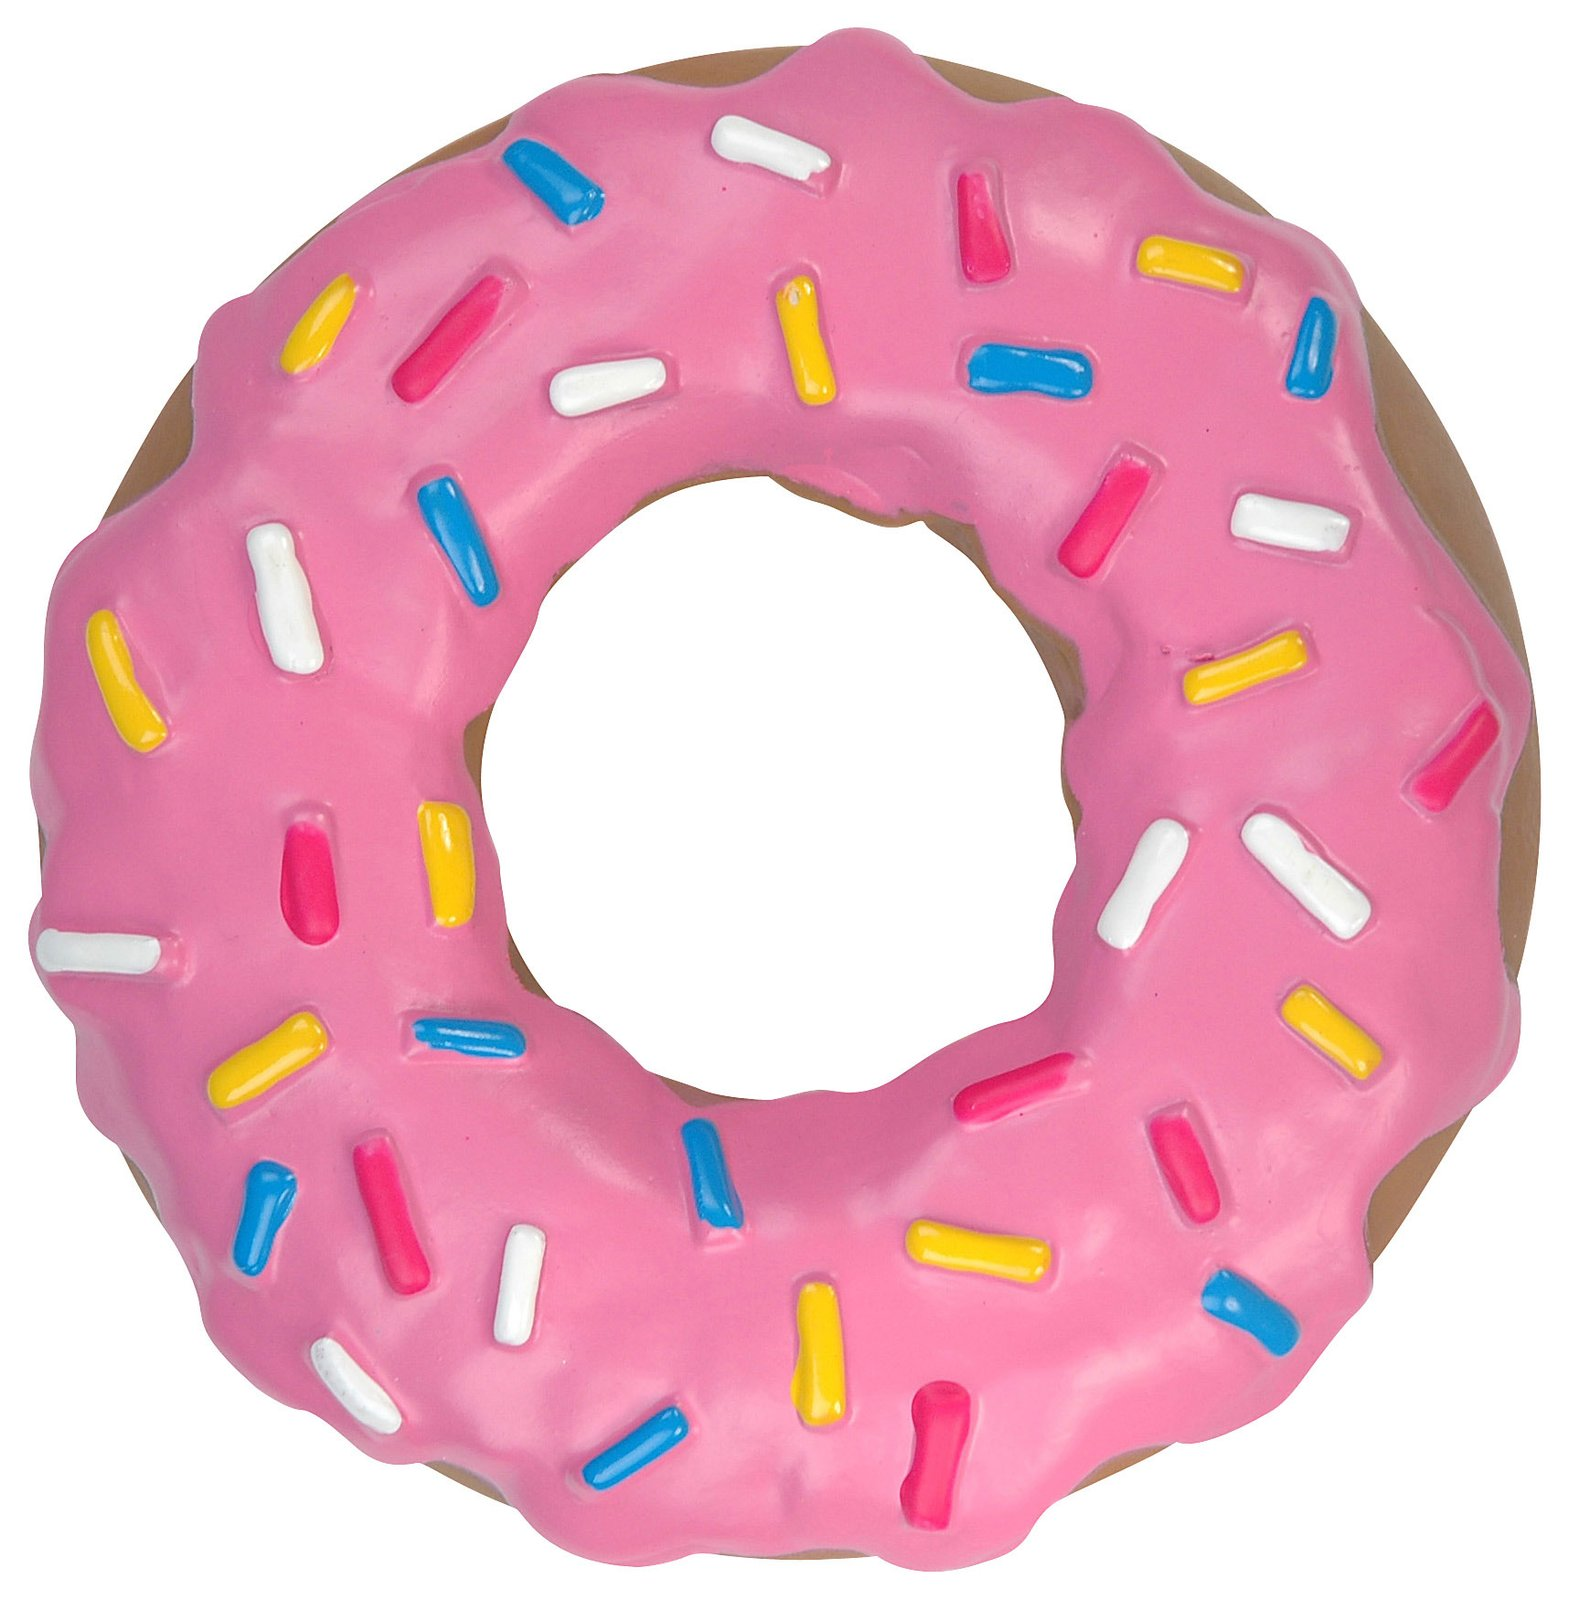 Free simple cliparts download. Donut clipart if you give a dog a donut